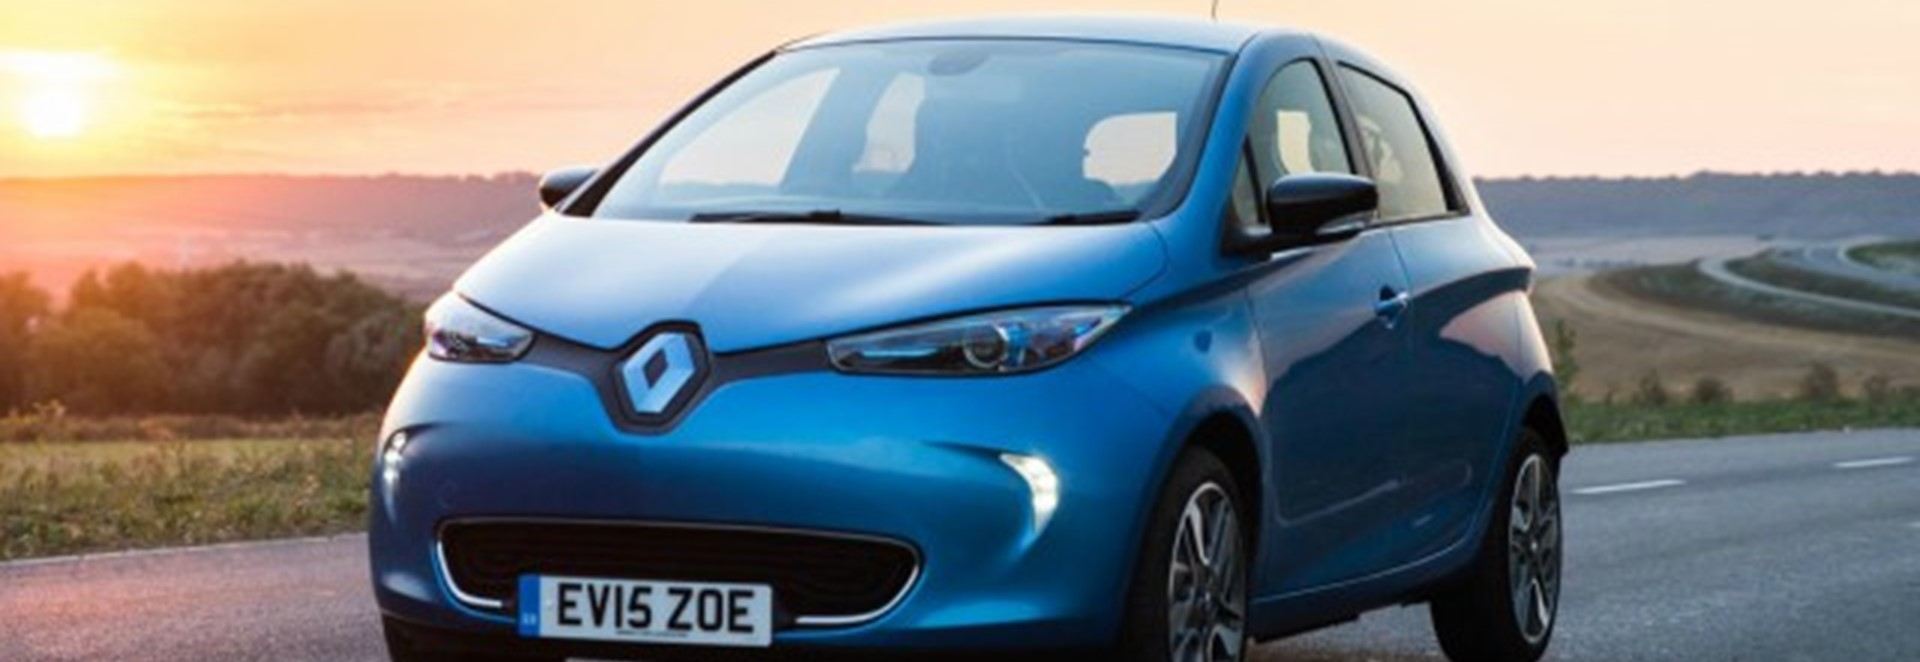 Best Electric Cars Our Guide Of Top Electric Cars Car Keys